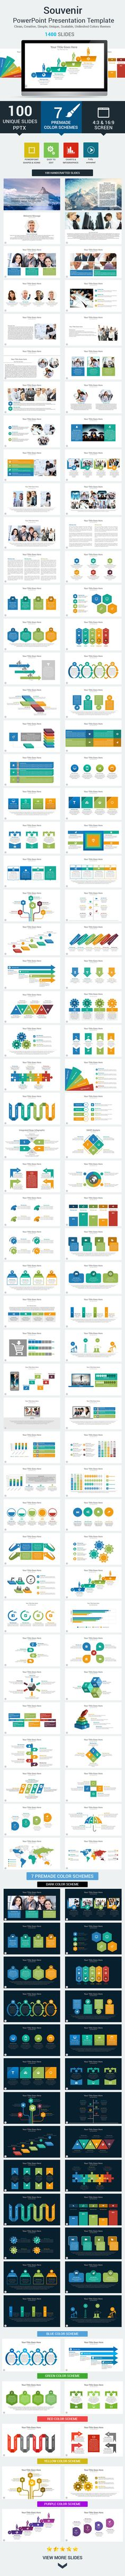 Souvenir PowerPoint Presentation Template (PowerPoint Templates)